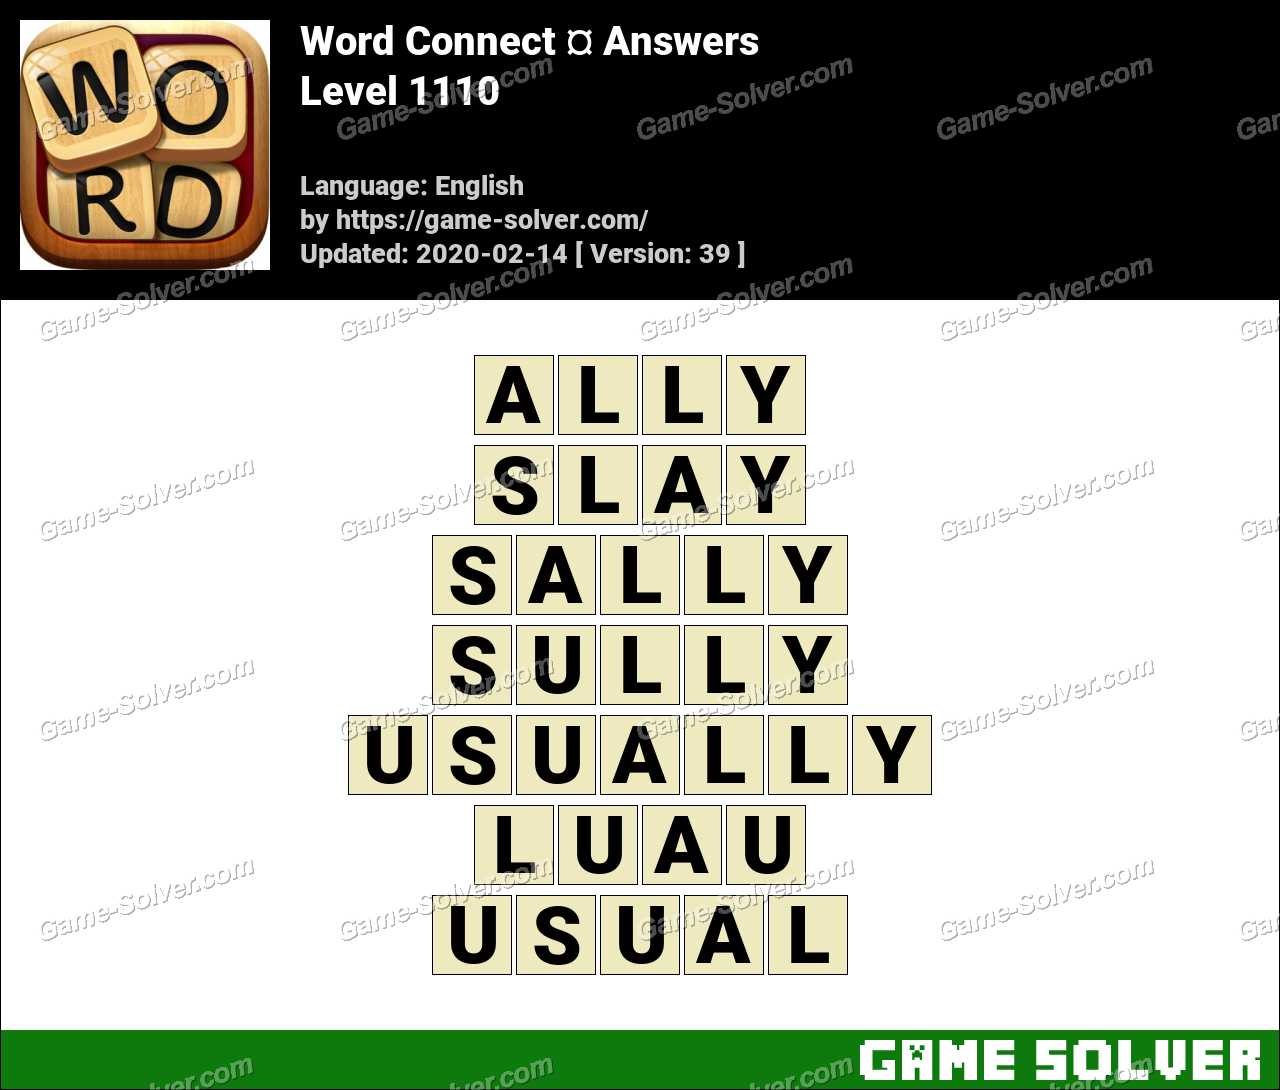 Word Connect Level 1110 Answers